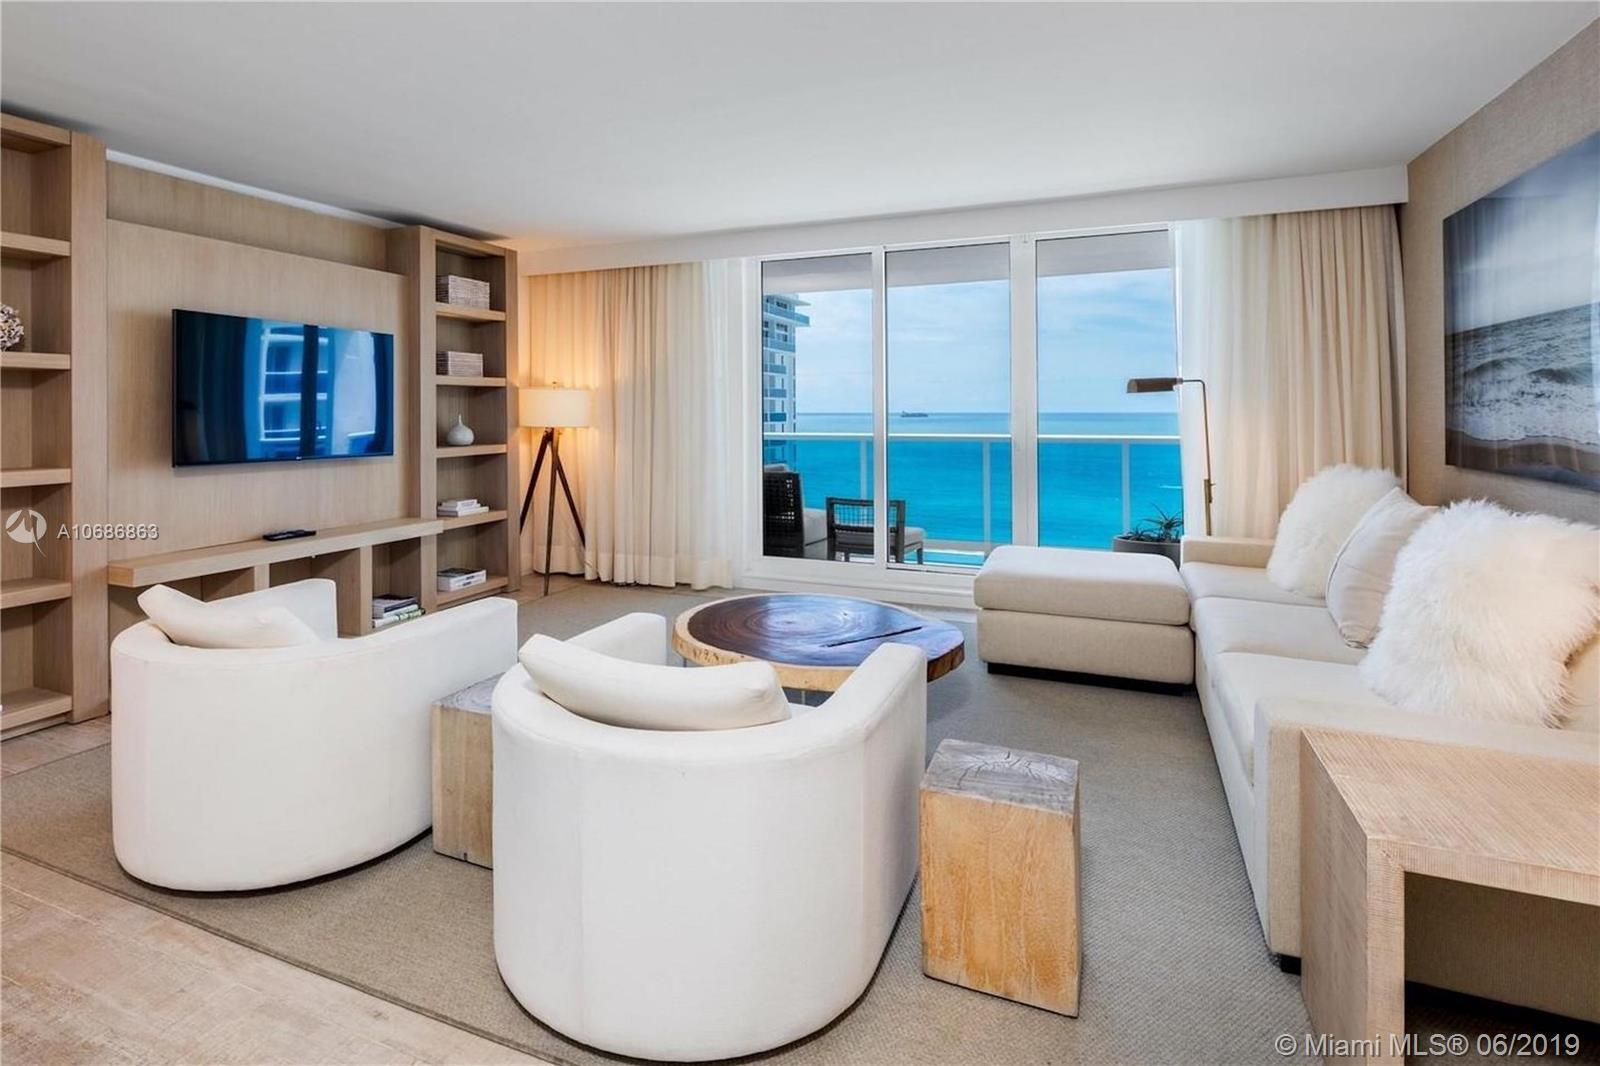 Enjoy direct ocean views from this 3 bedroom + den luxurious 1,817 Sq. Ft. Ft. condo. Comes with the custom hotel furniture package designed by acclaimed Brazilian interior decorator Debra Aguiar. Each room has smart TV's. Guests have access to a variety of white glove services including a private fully-staffed residence lobby, valet attendants, personal concierge, chauffeured Tesla sedans, the hotels 5 star luxurious and chic eco-conscious amenities. Rental includes linens and towels, toiletries, dishes, pots and pans, daily coffee and tea, full use of all the hotel amenities to include 4 pools, 4 restaurants, 3 bars, 14,000 sq, ft, spa and hair salon, Soul Cycle, chauffeured Teslas, and much more. Available for daily, weekly, monthly and yearly rentals through Five Star Luxury Travel.